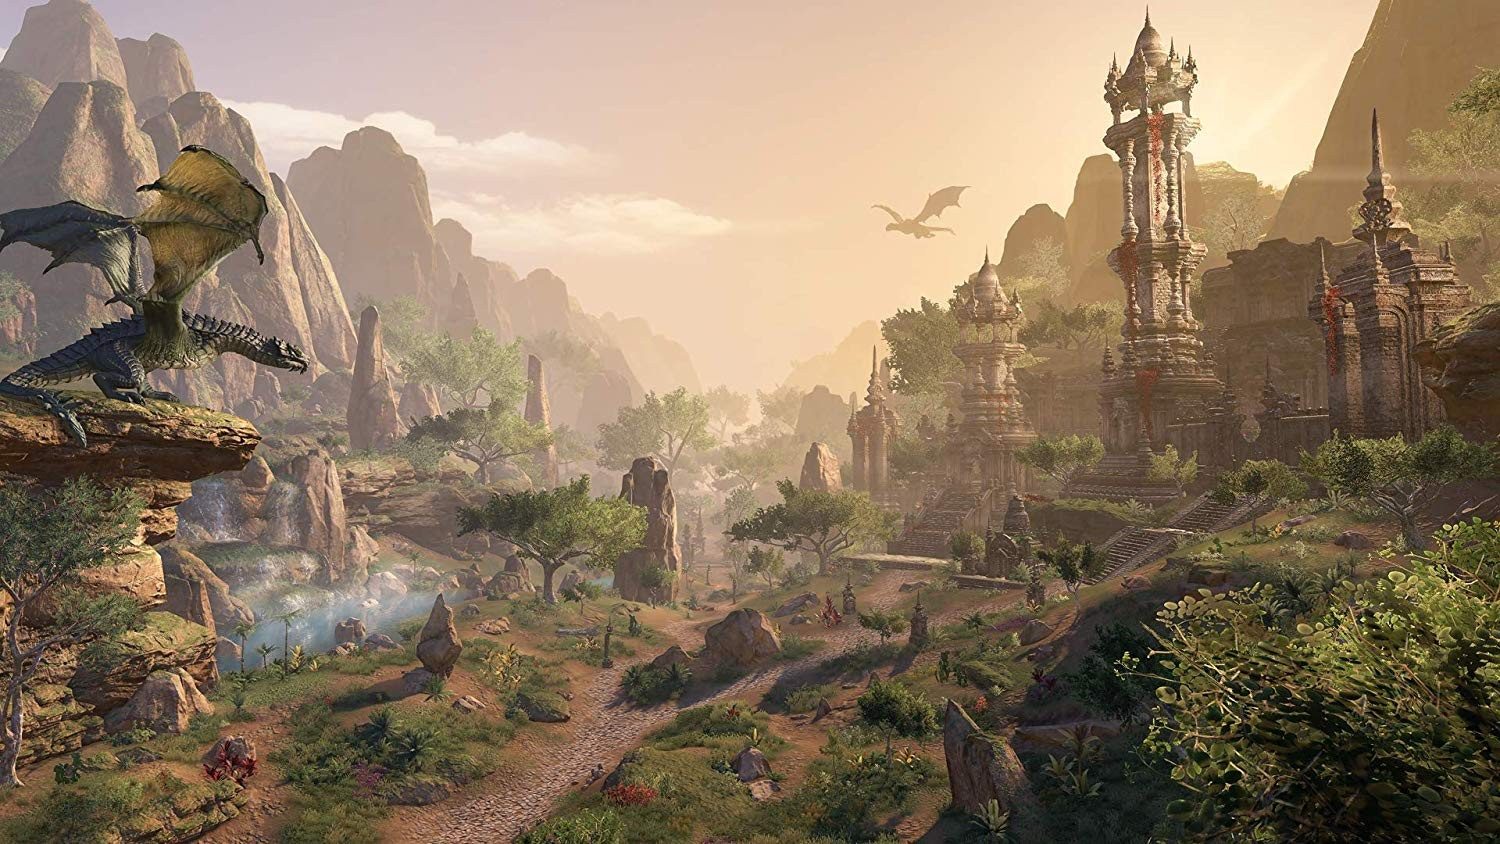 The World of Tamriel Continues with The Elder Scrolls Online